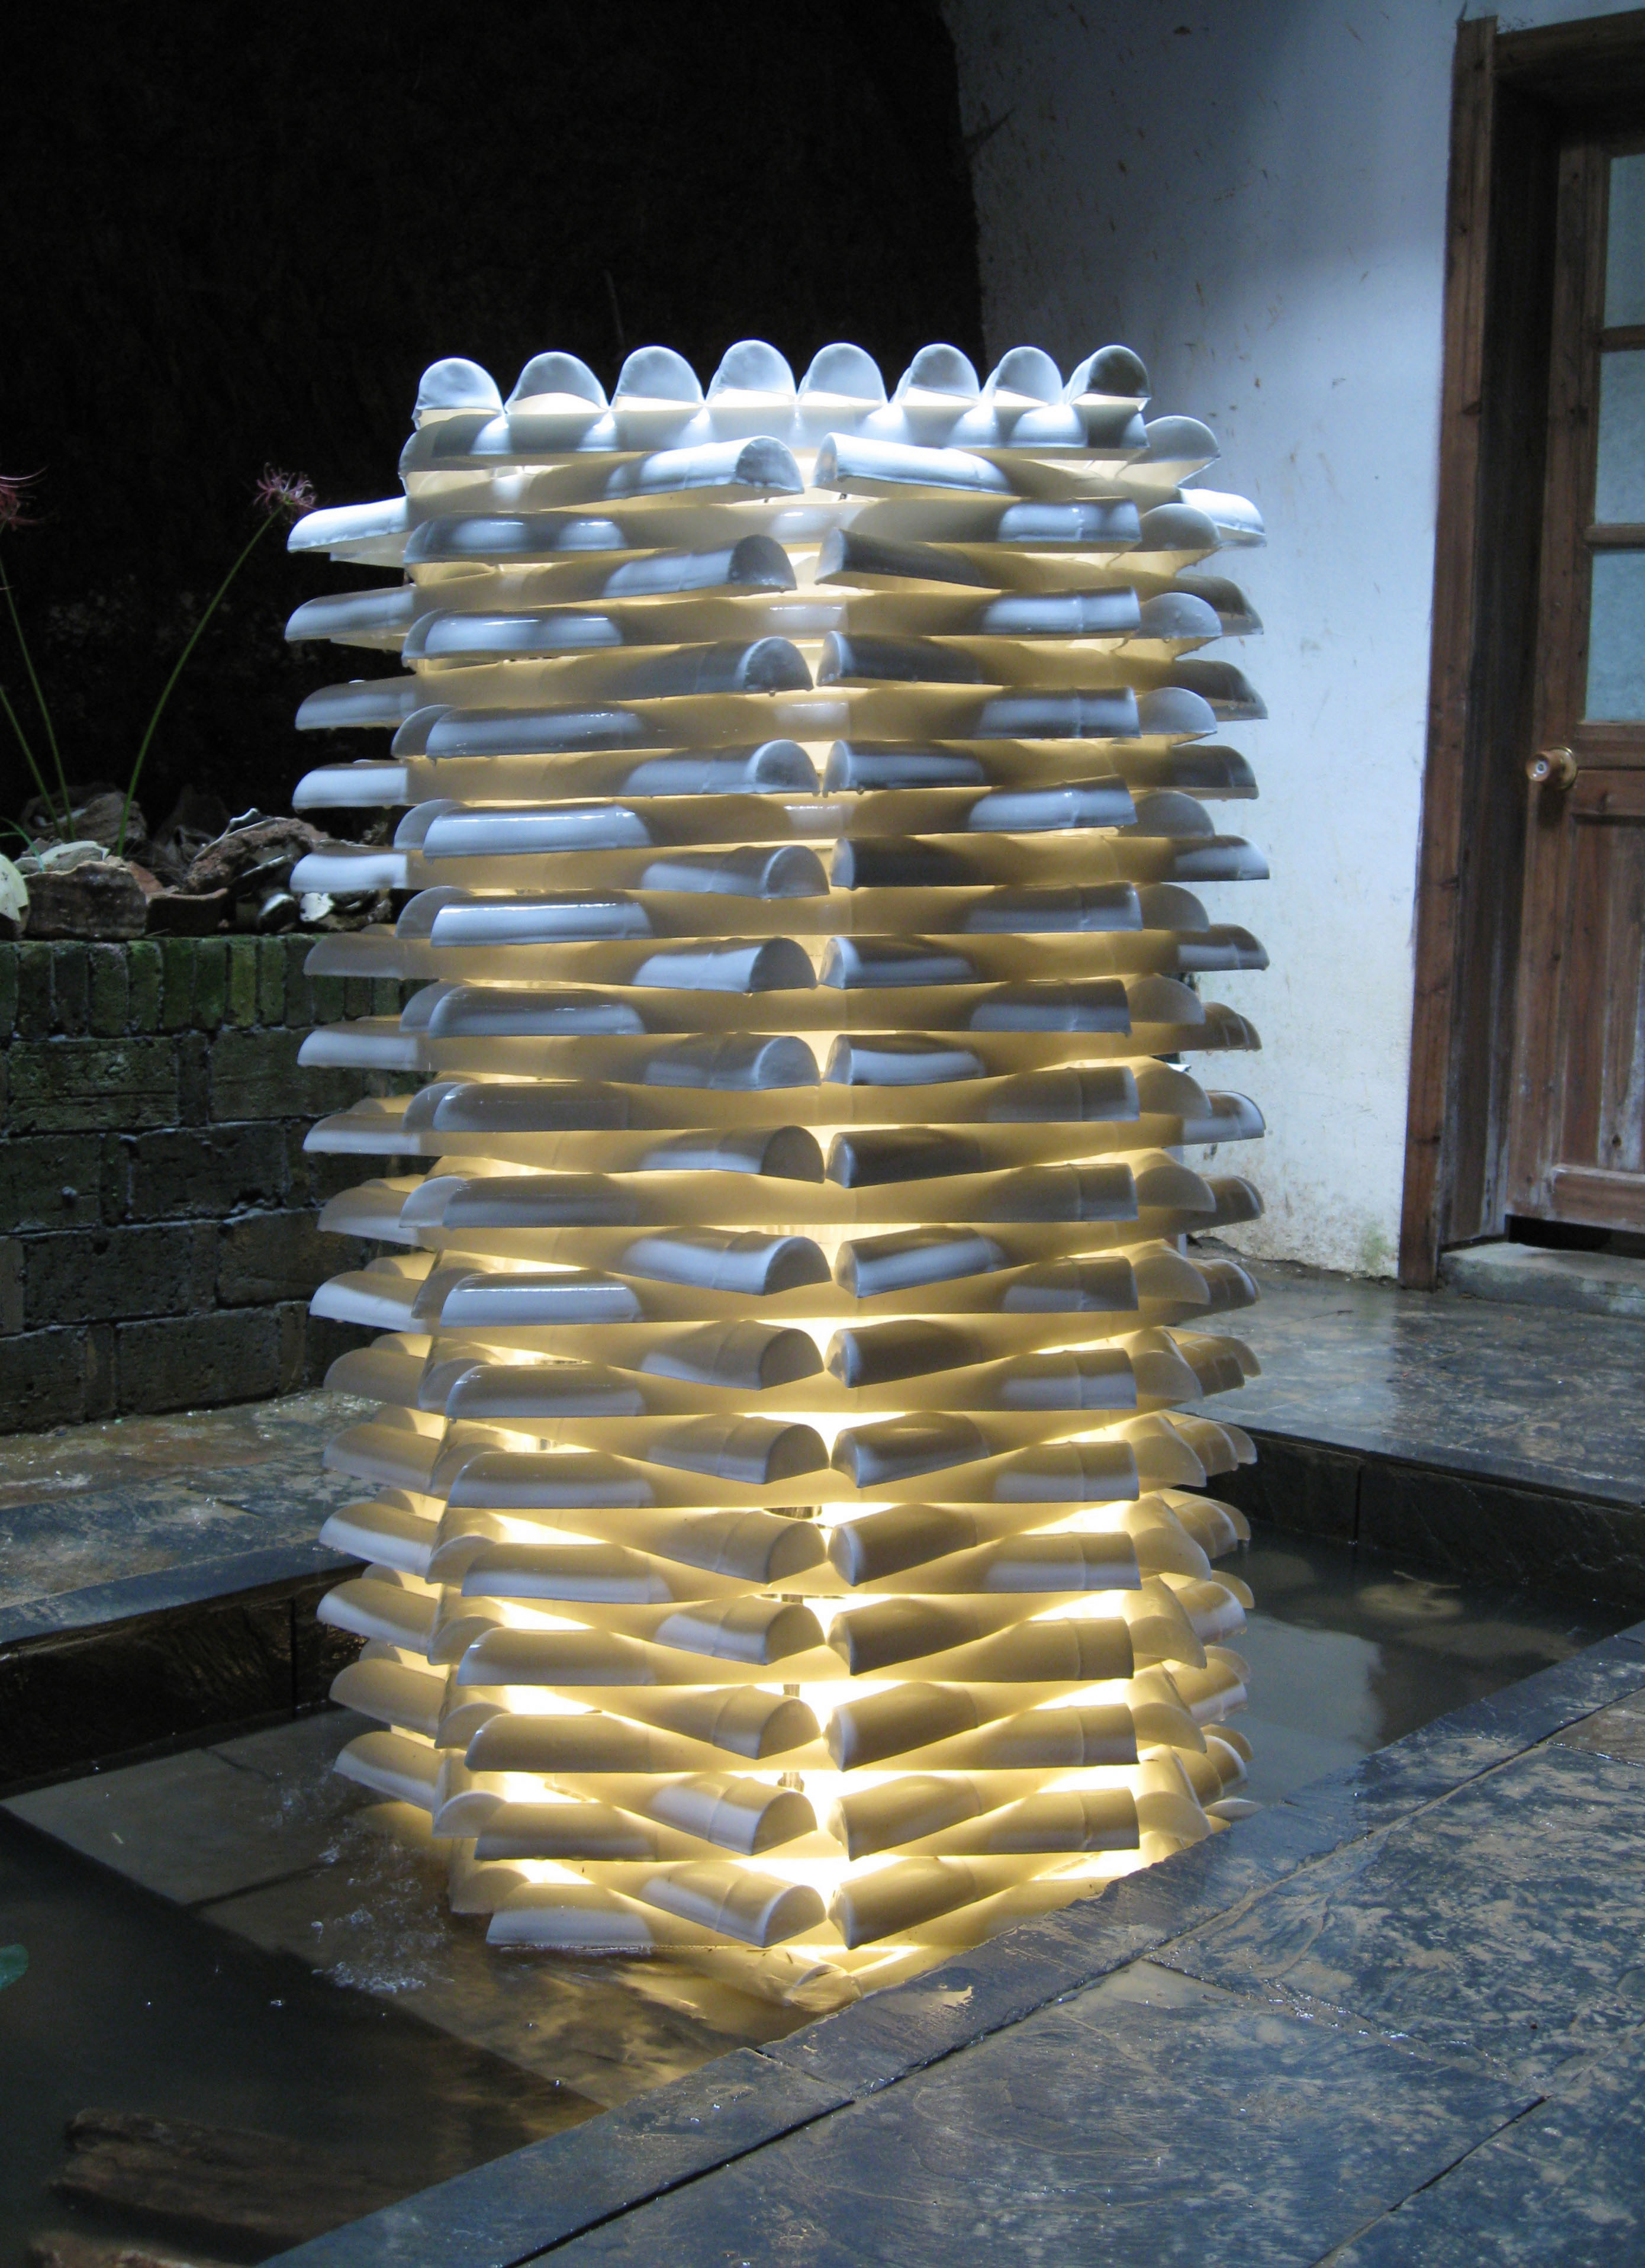 9. Cast bamboo Water feature